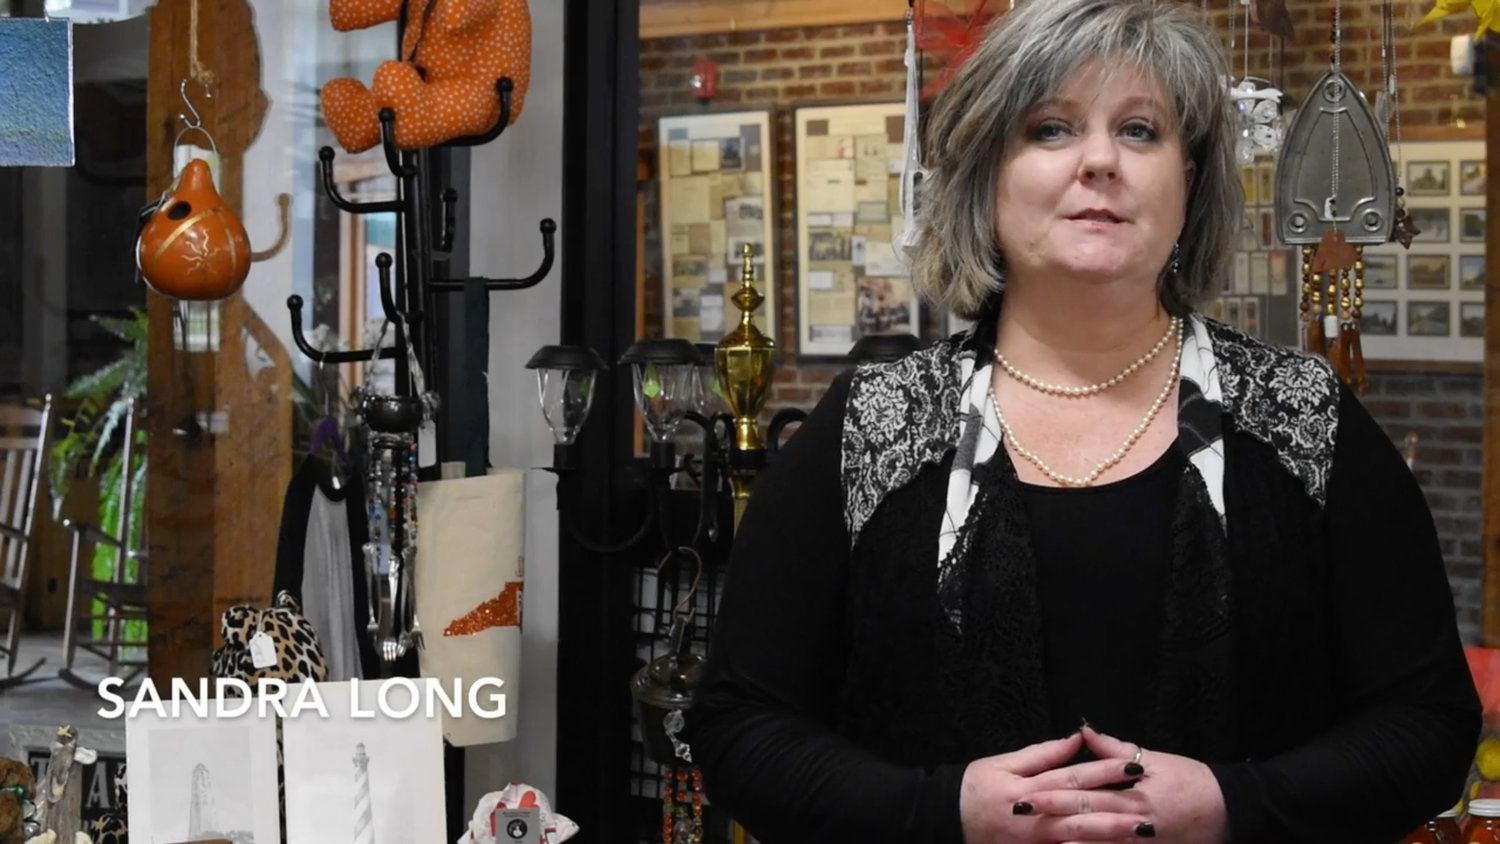 Sandra Long, at Artisan's Emporium, is one of nearly two dozen people featured in a video that promotes local spending.